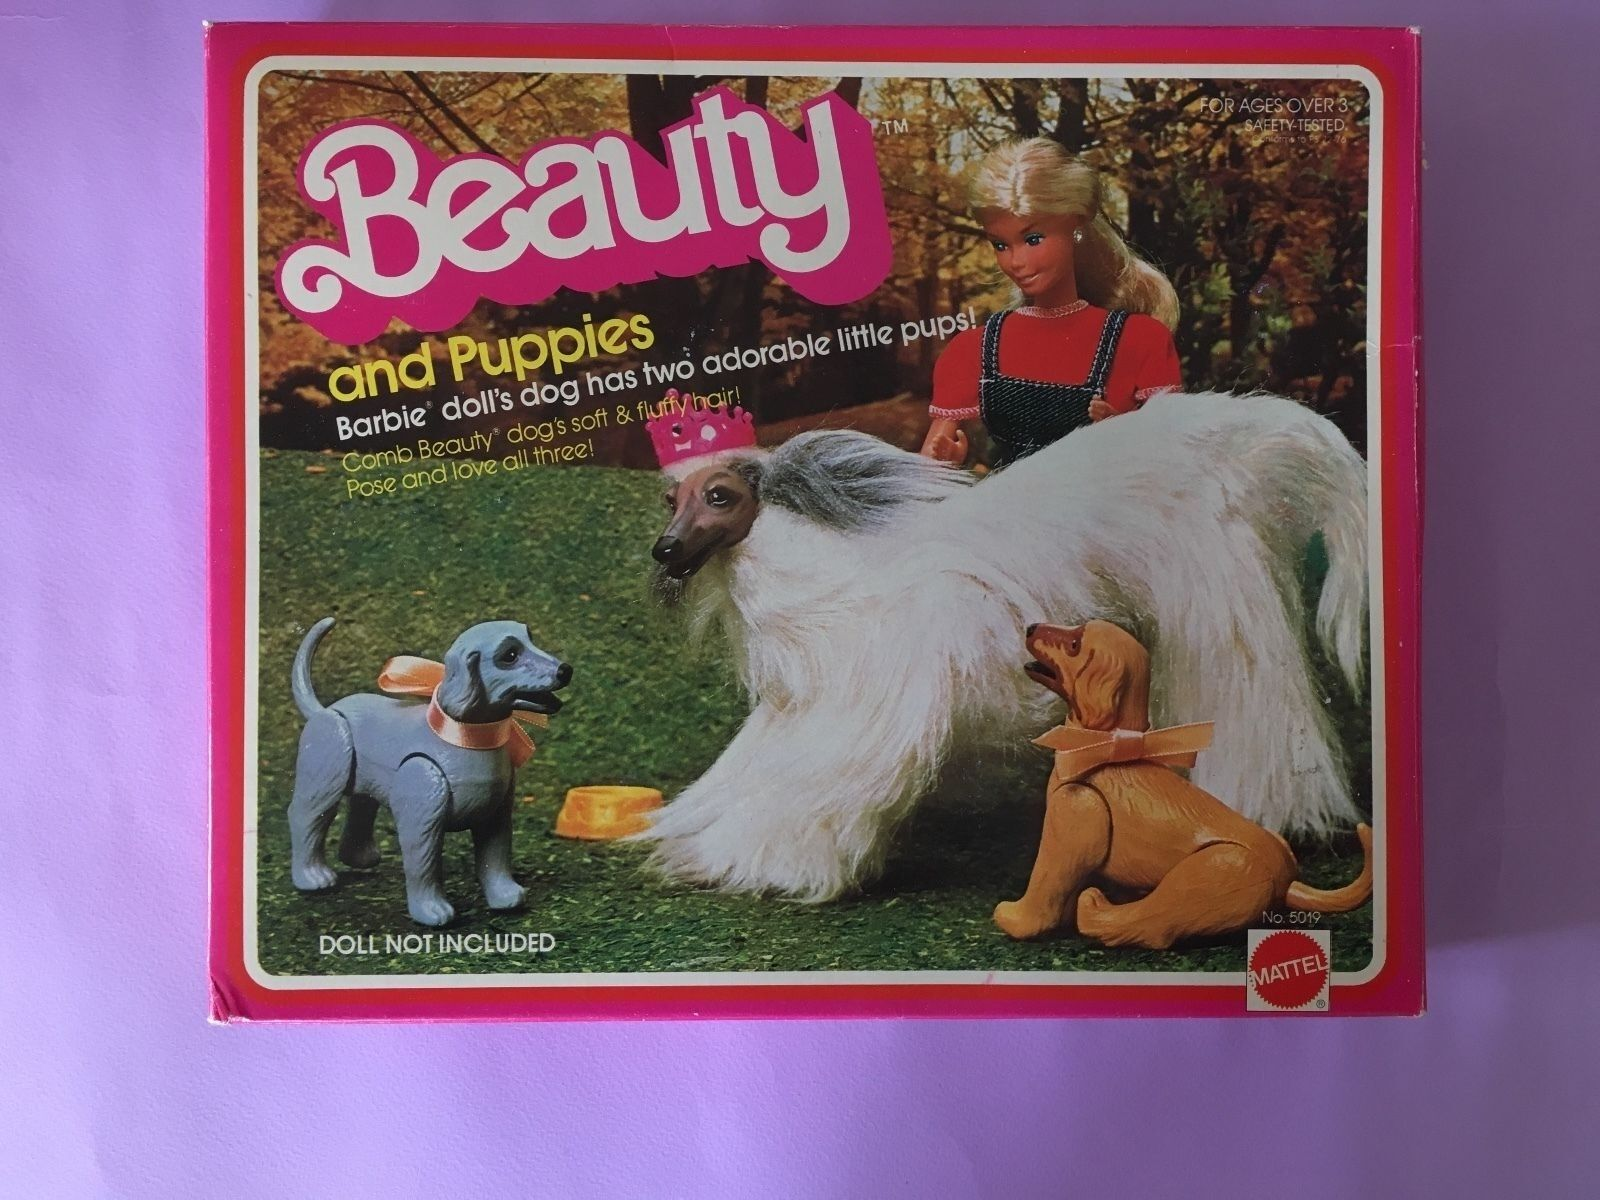 Barbie Dog 1981 - Beauty and Puppies NIB REF.5019